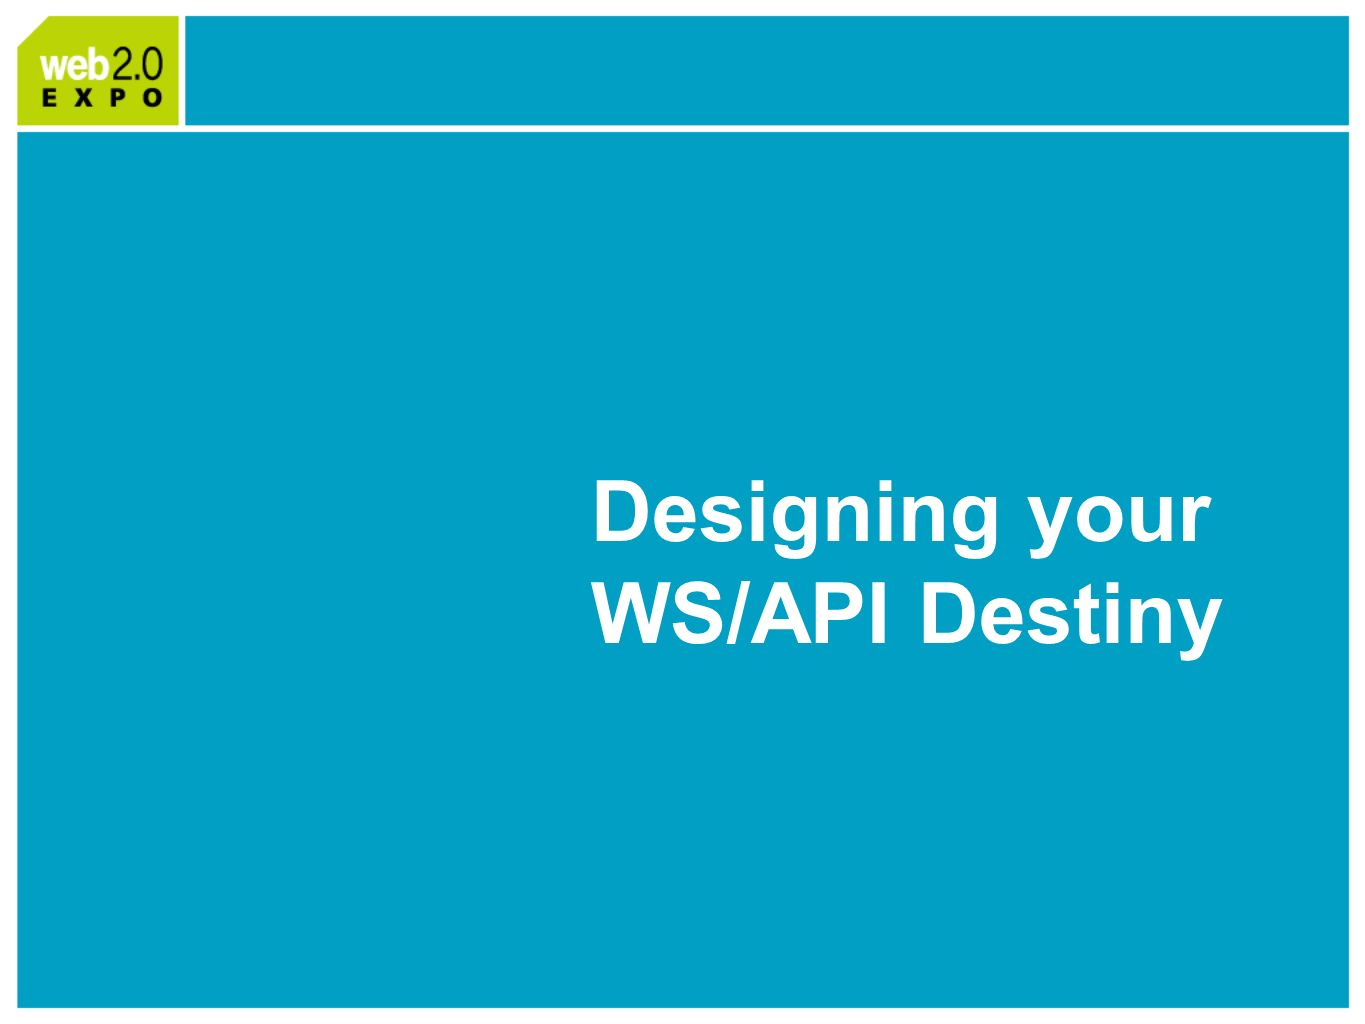 Designing your WS/API Destiny